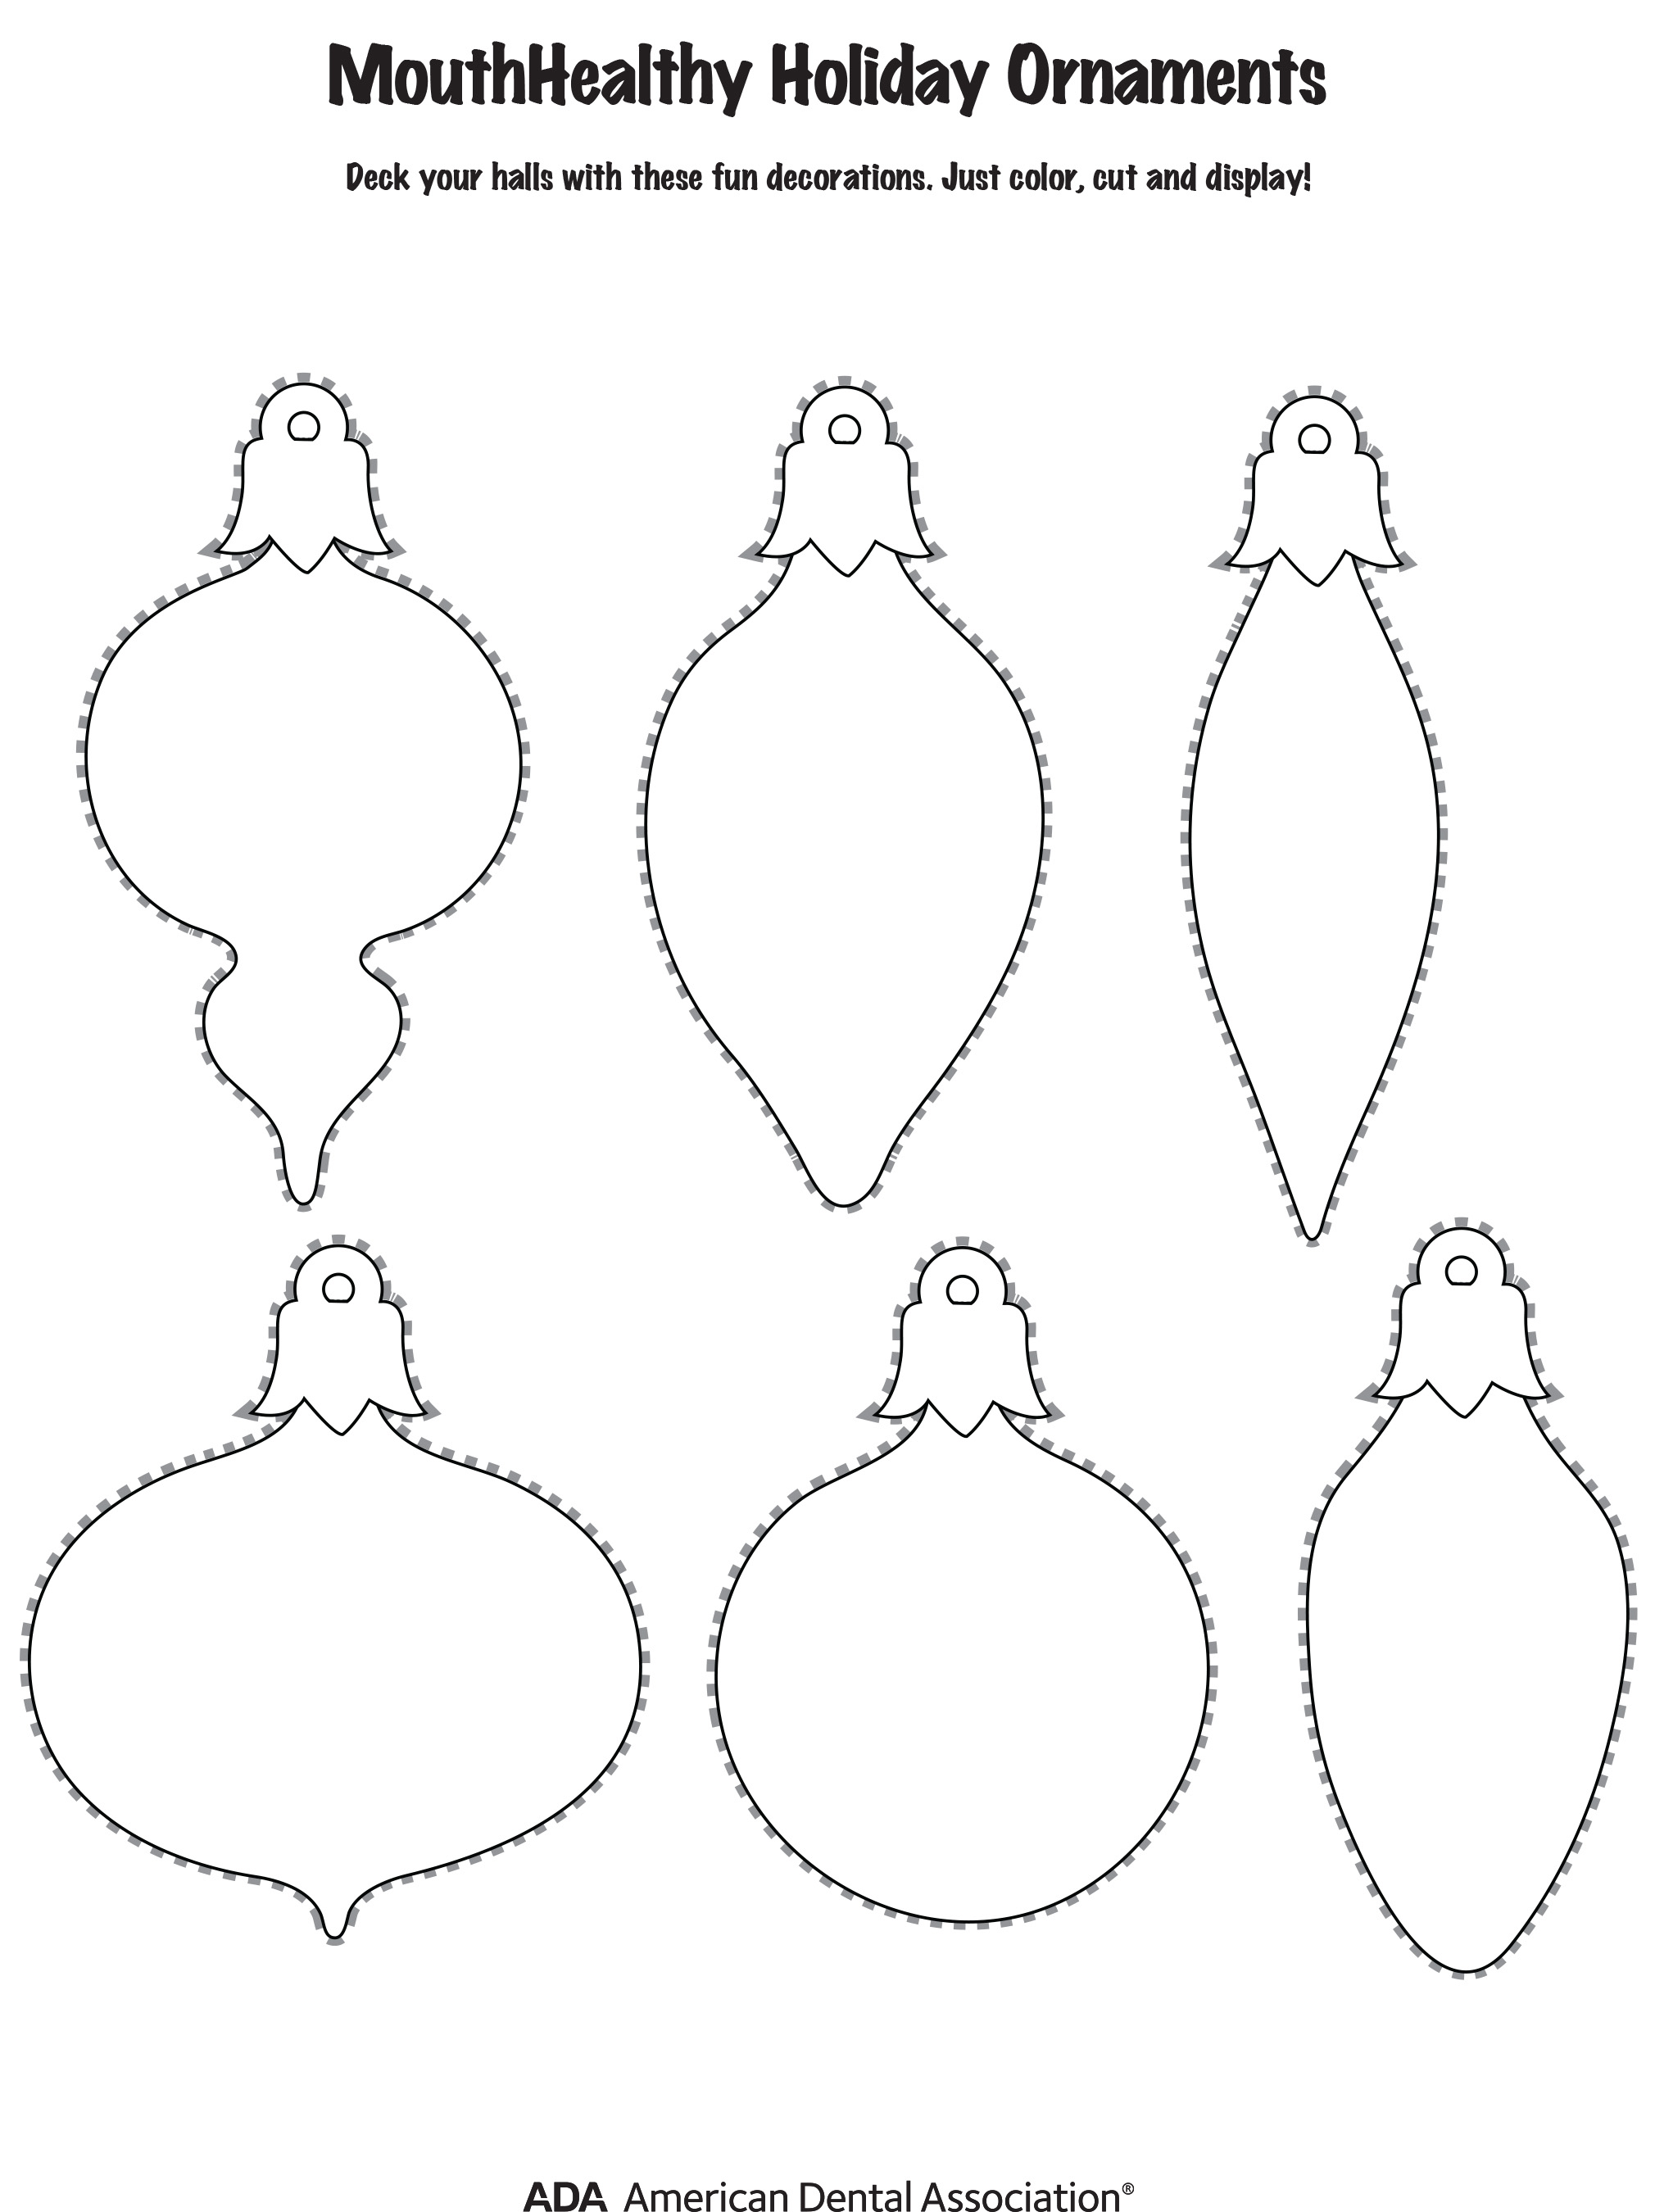 MouthHealthy Holiday Ornaments Template